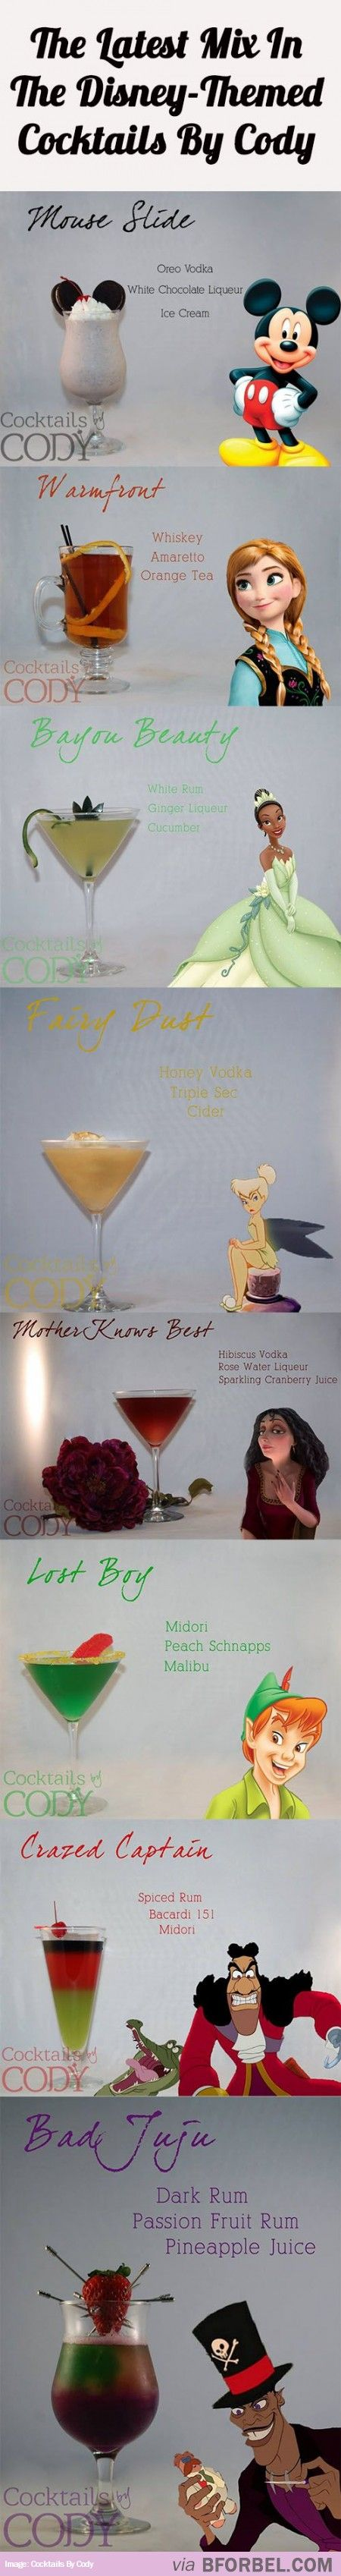 8 Of The Latest Disney-Themed Cocktails…The bad juju sounds really good to me. @Melinda W Carroll (Swann) LOL